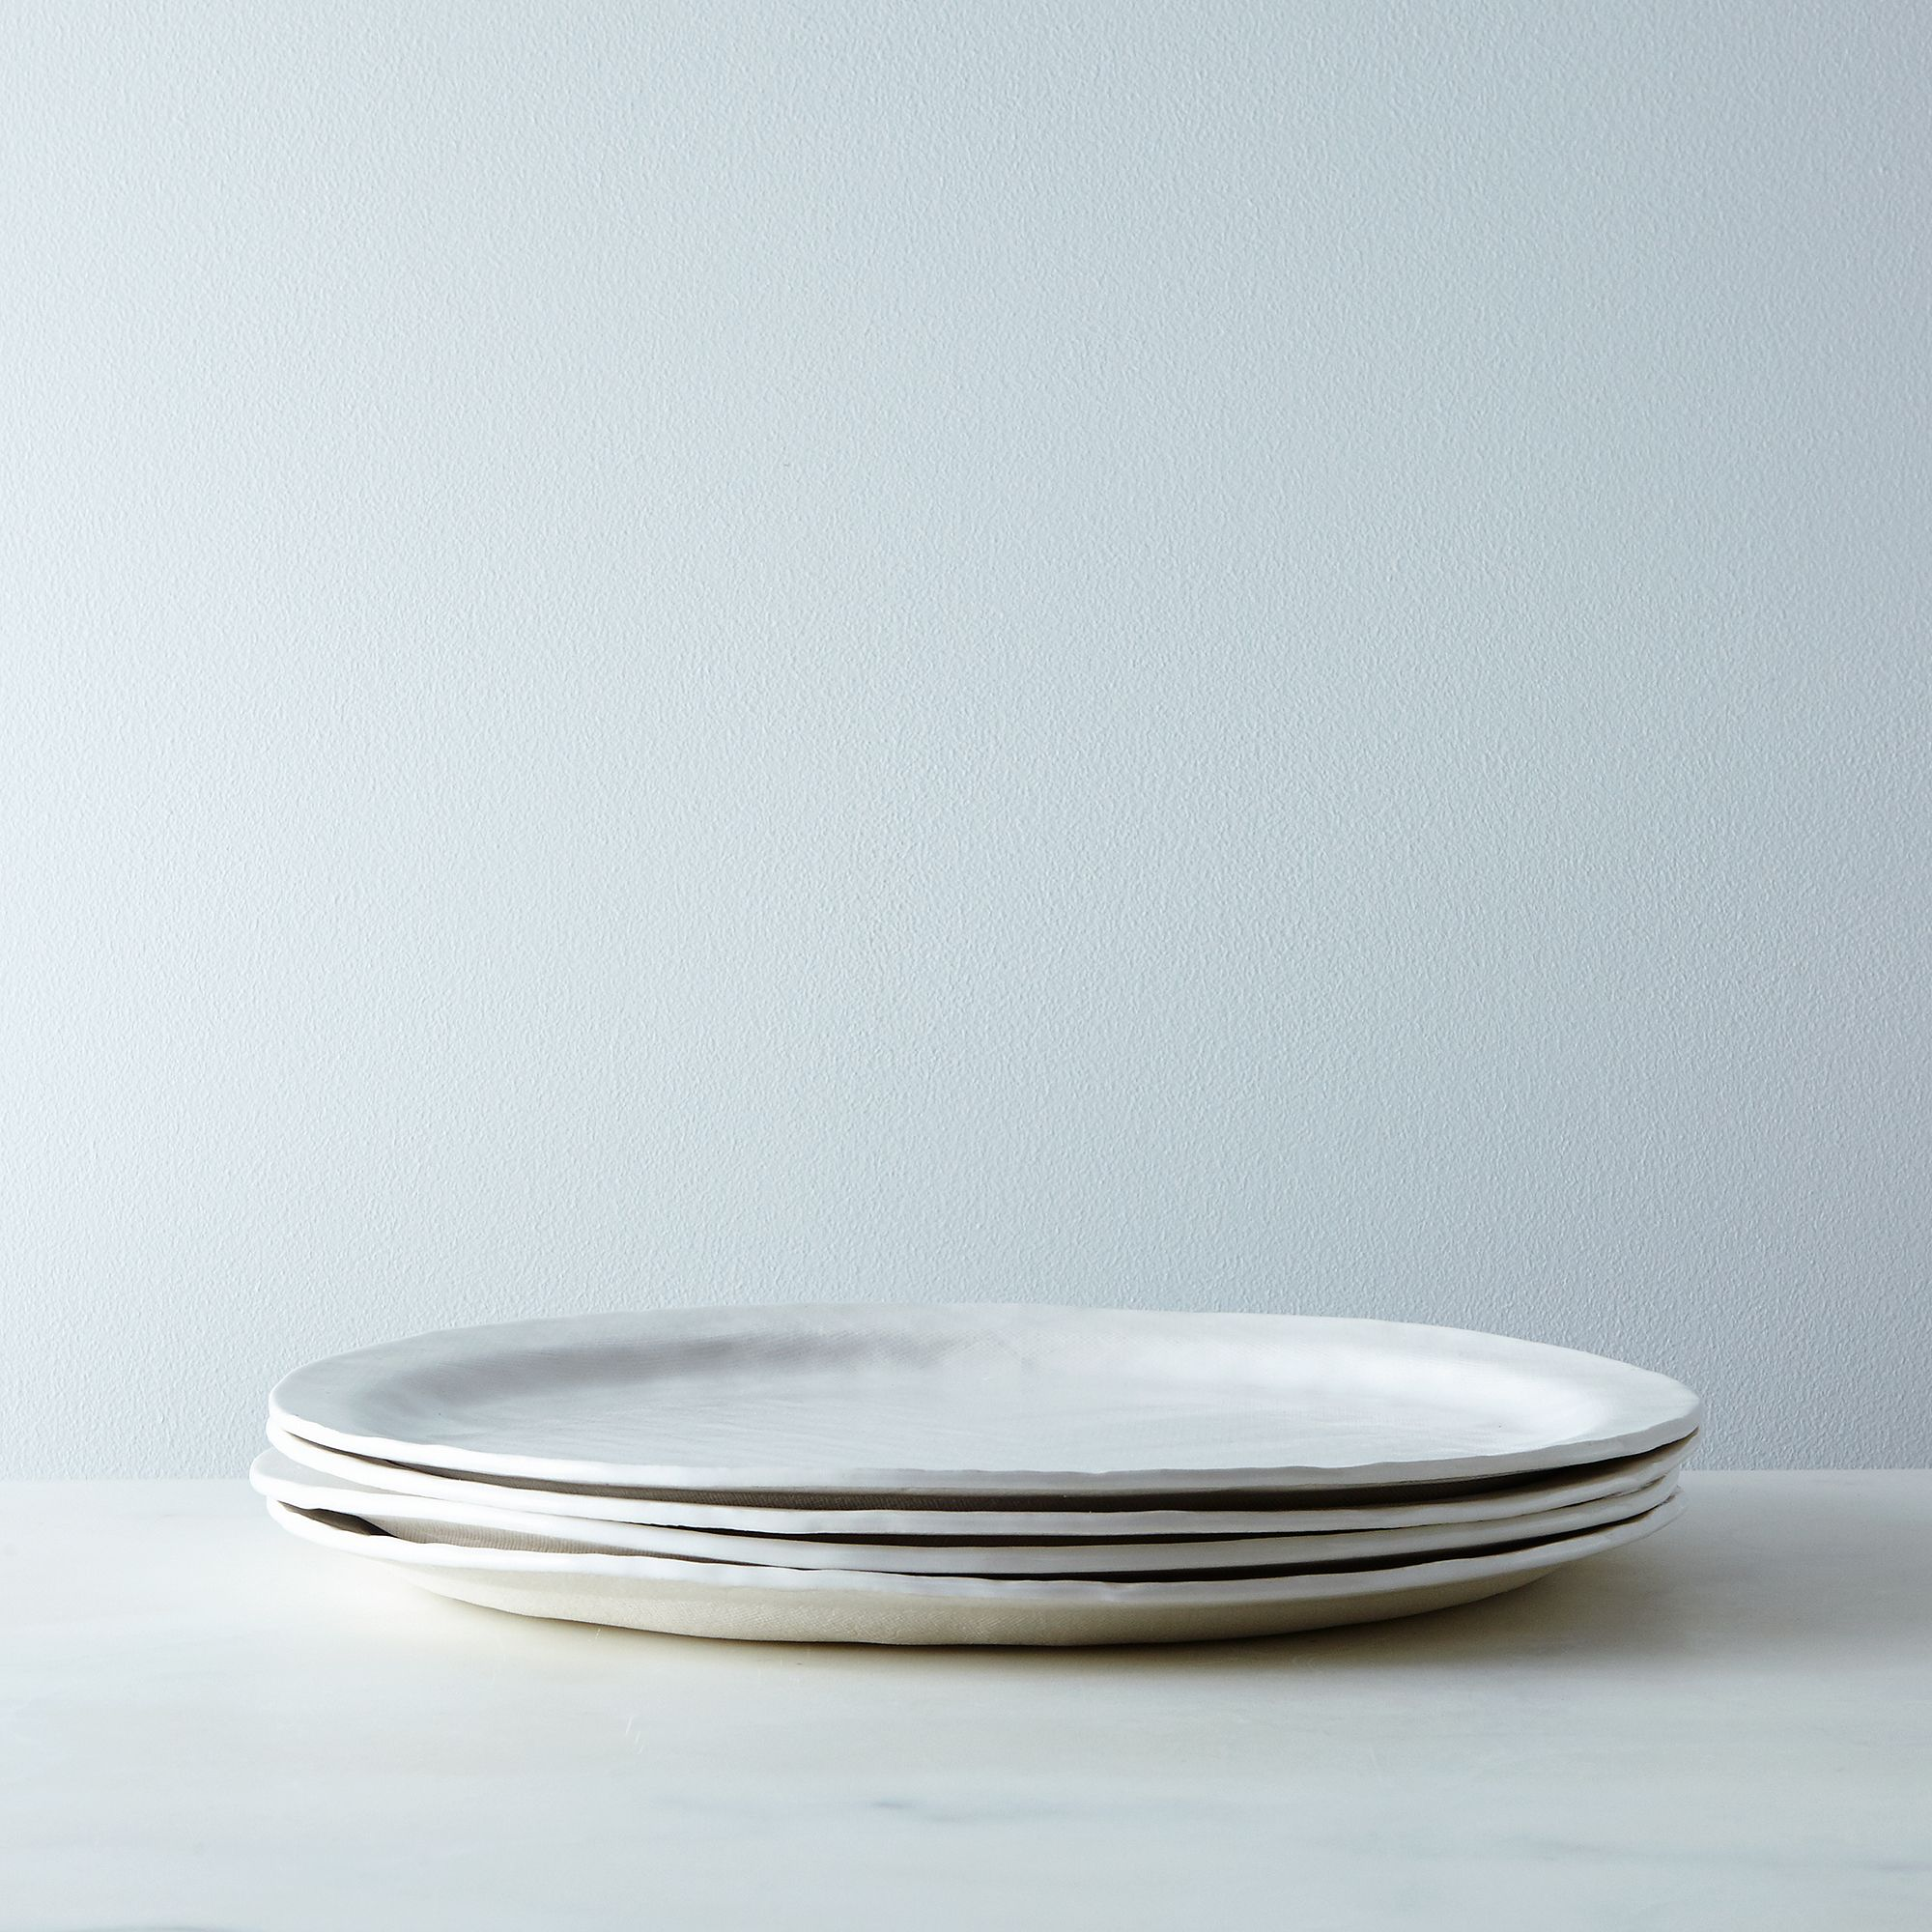 8ca39550 a0f8 11e5 a190 0ef7535729df  2015 0604 looks like white handmade porcelain textured dinnerware dinner plates set of 4 silo rocky luten 002